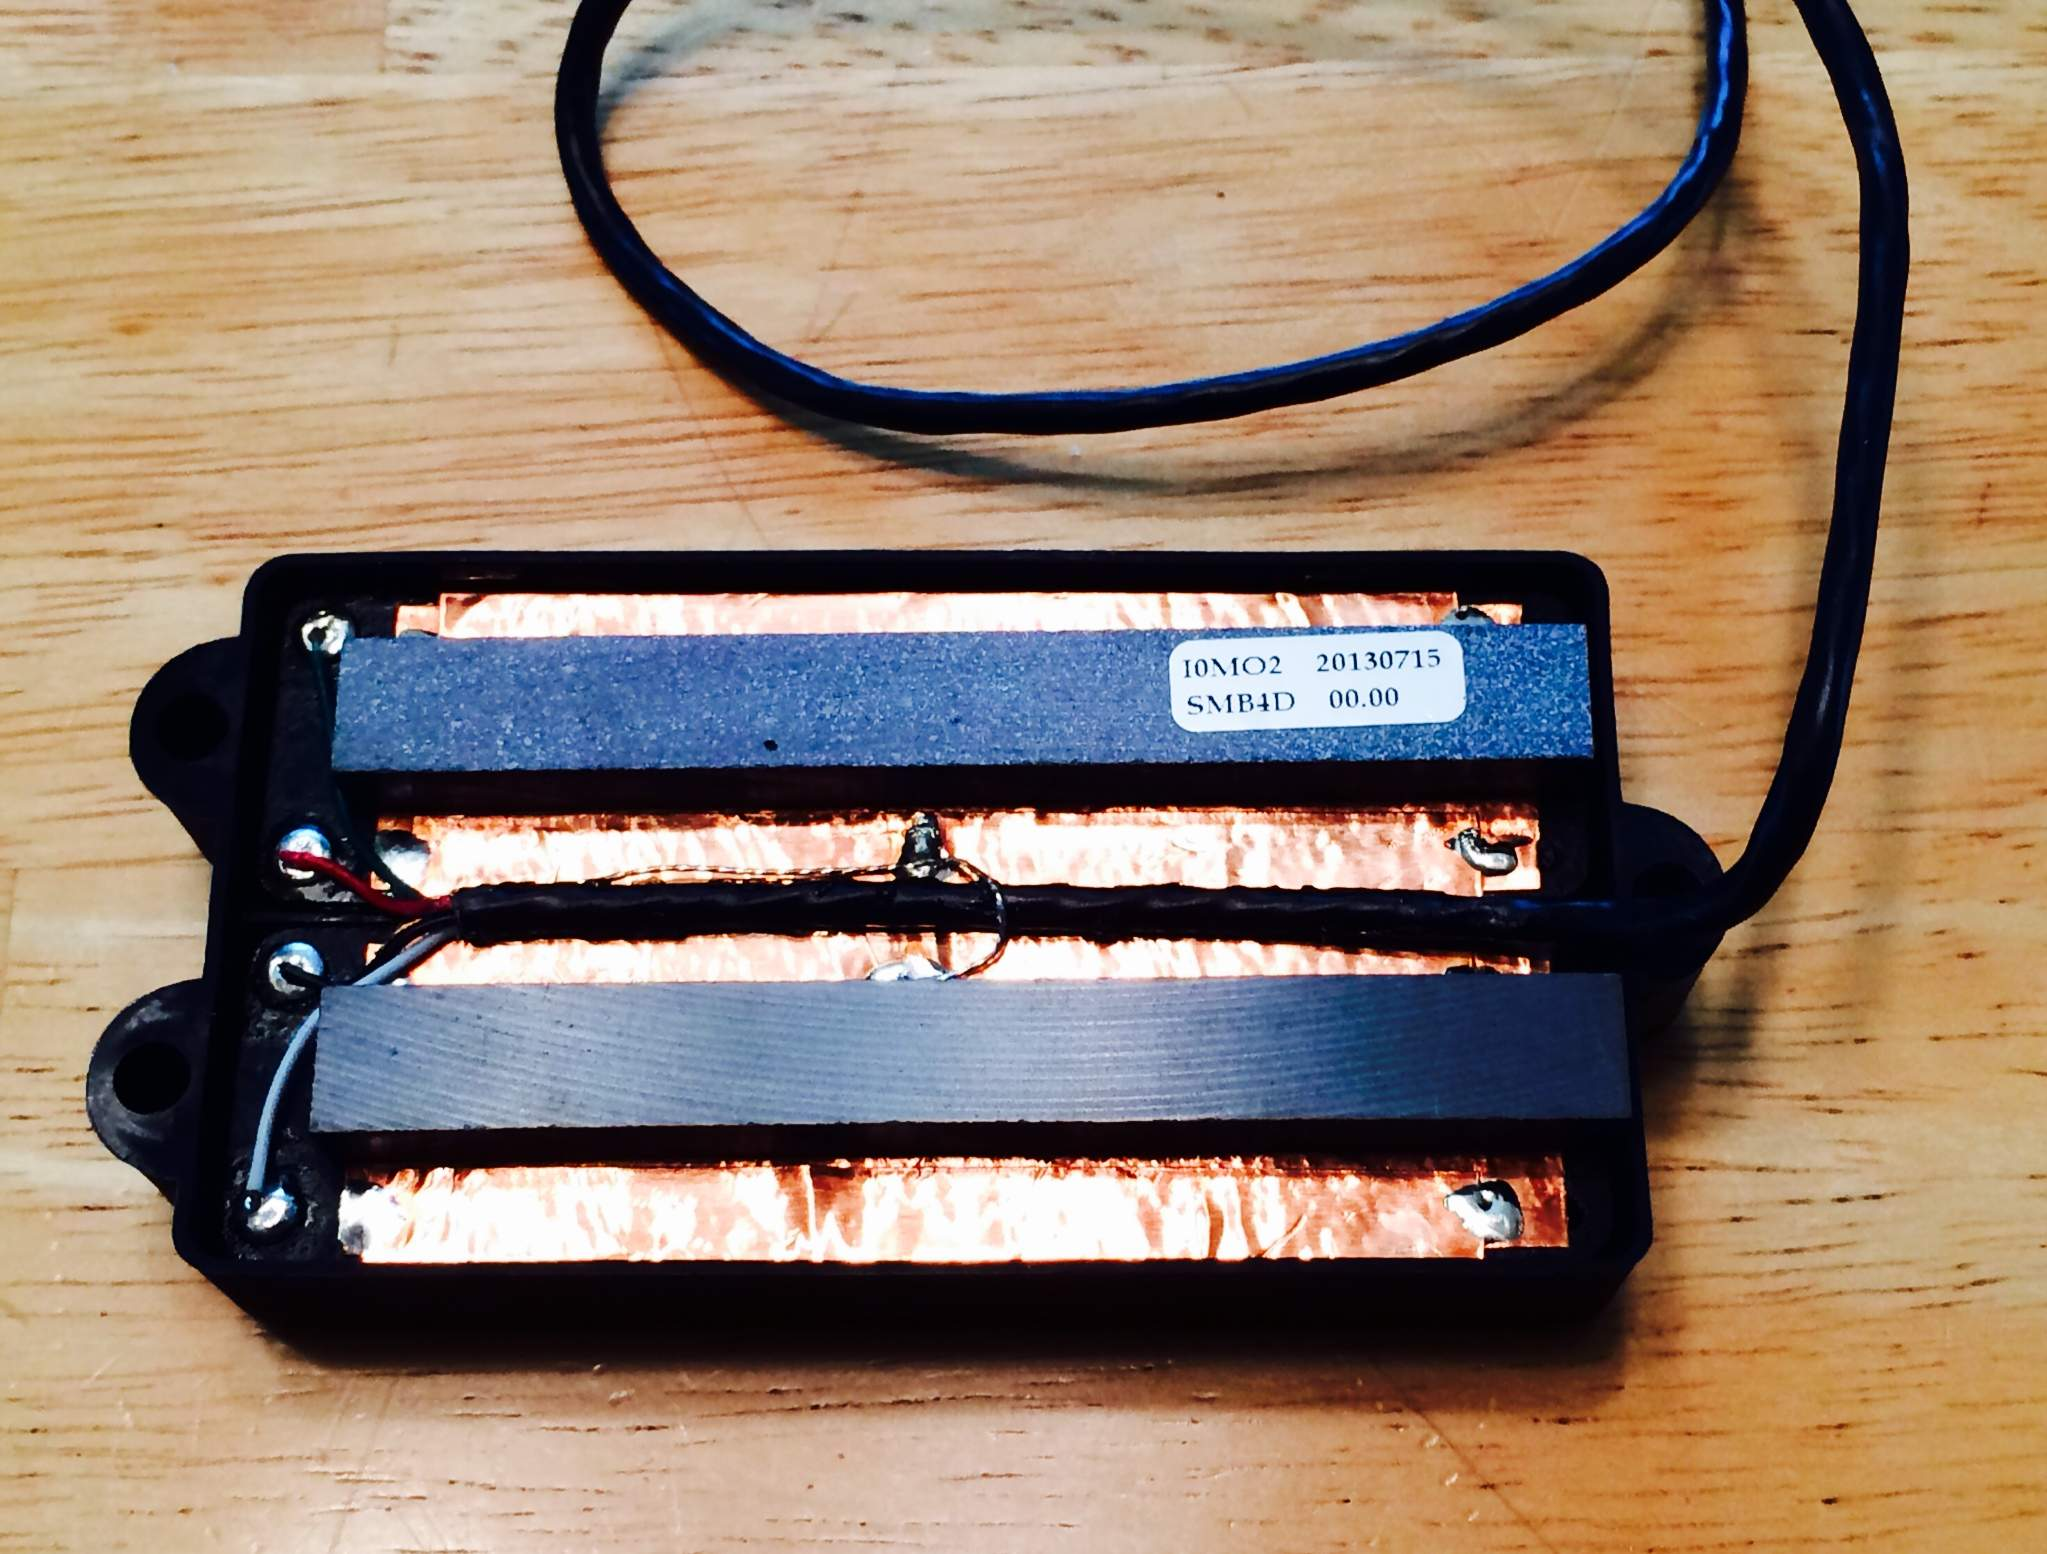 up for grabs is a newer duncan mm ceramic smb-4d pickup with the seymour  duncan logo which comes in the original packaging including wiring diagram